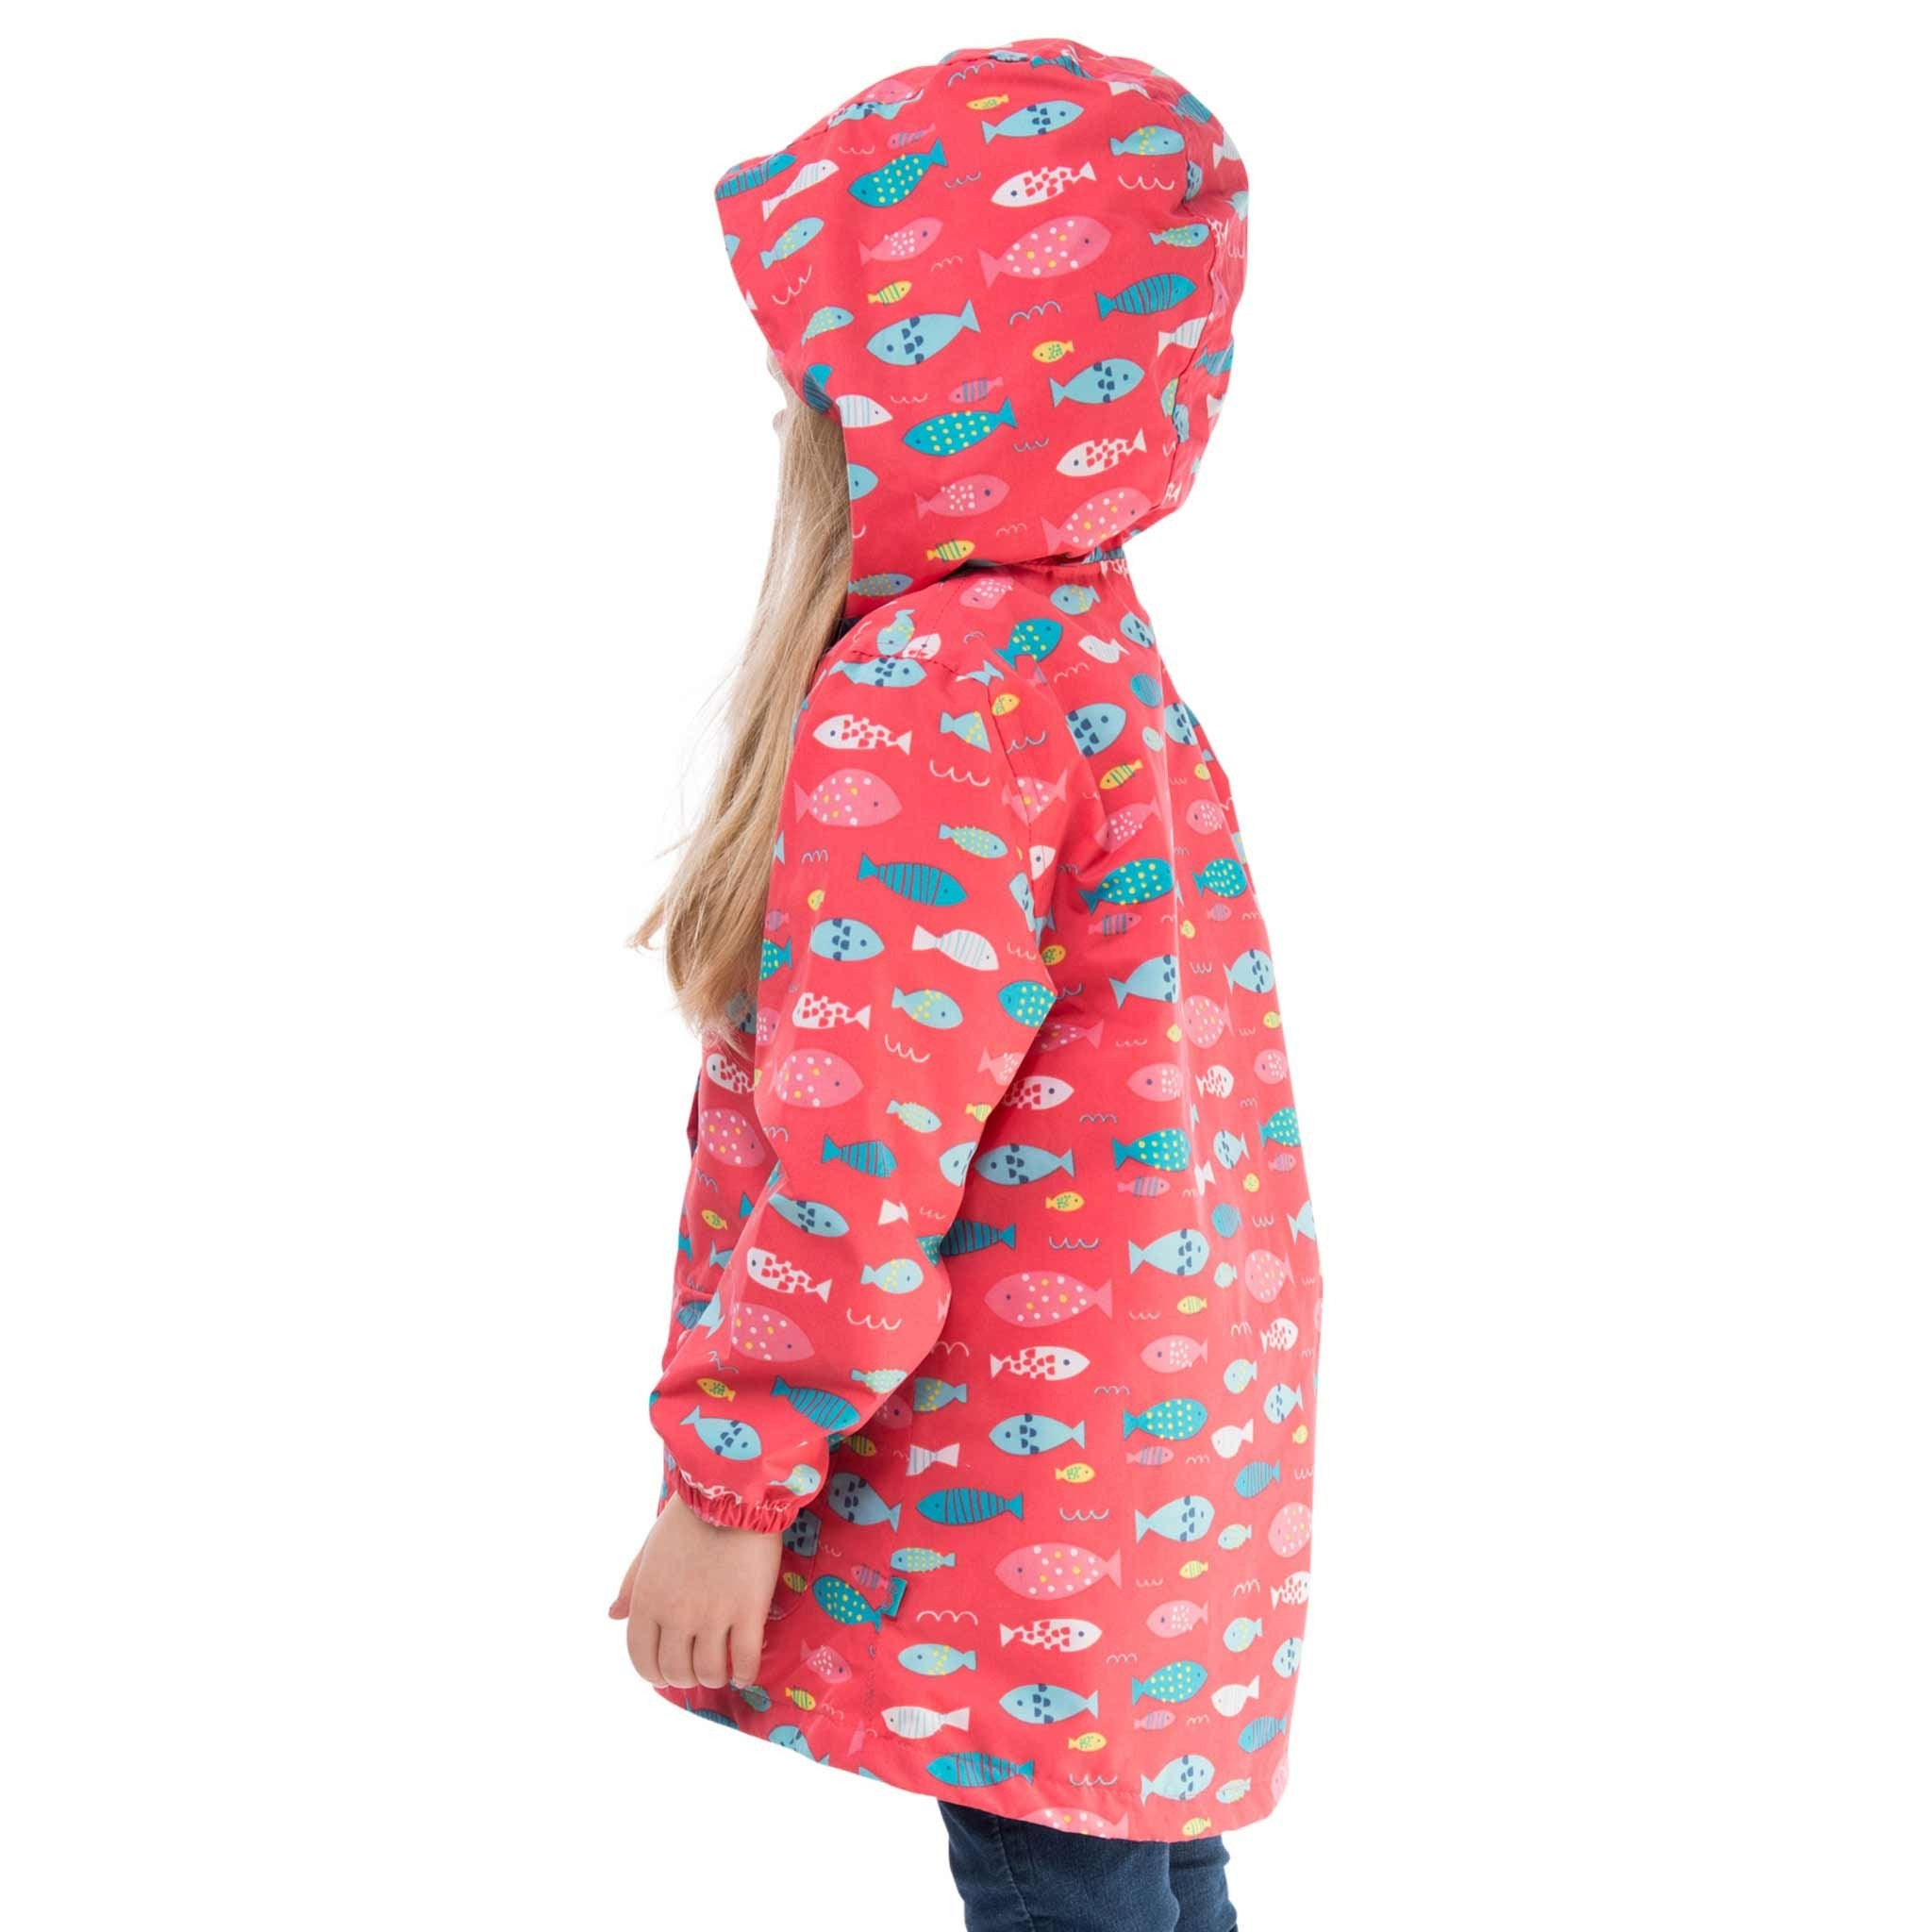 Carrie Girls Waterproof Hooded Jacket, in Rose Pink Fish Print, Modelled Side View | Lighthouse